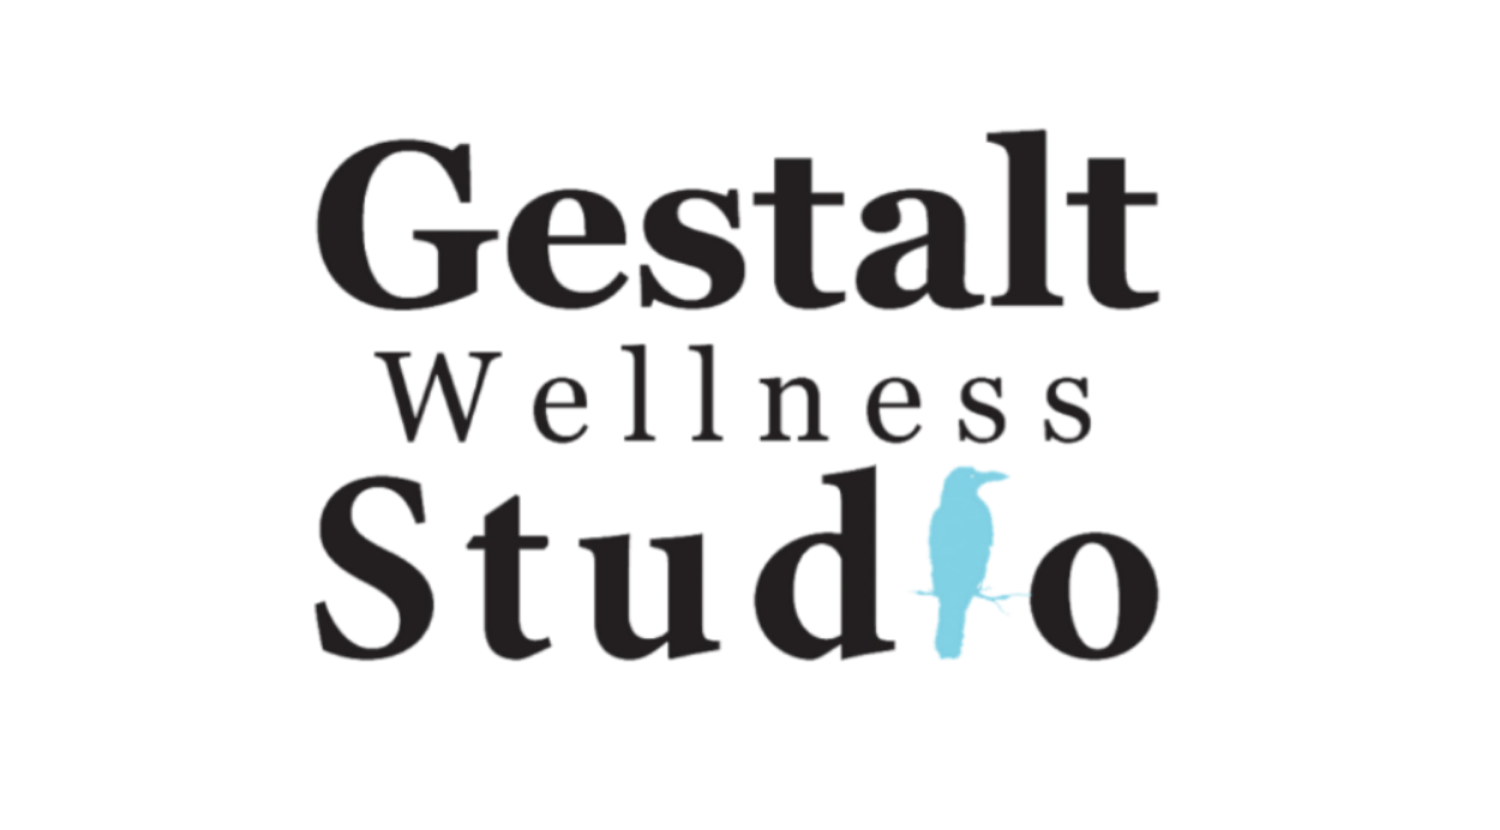 Gestalt Wellness Studio